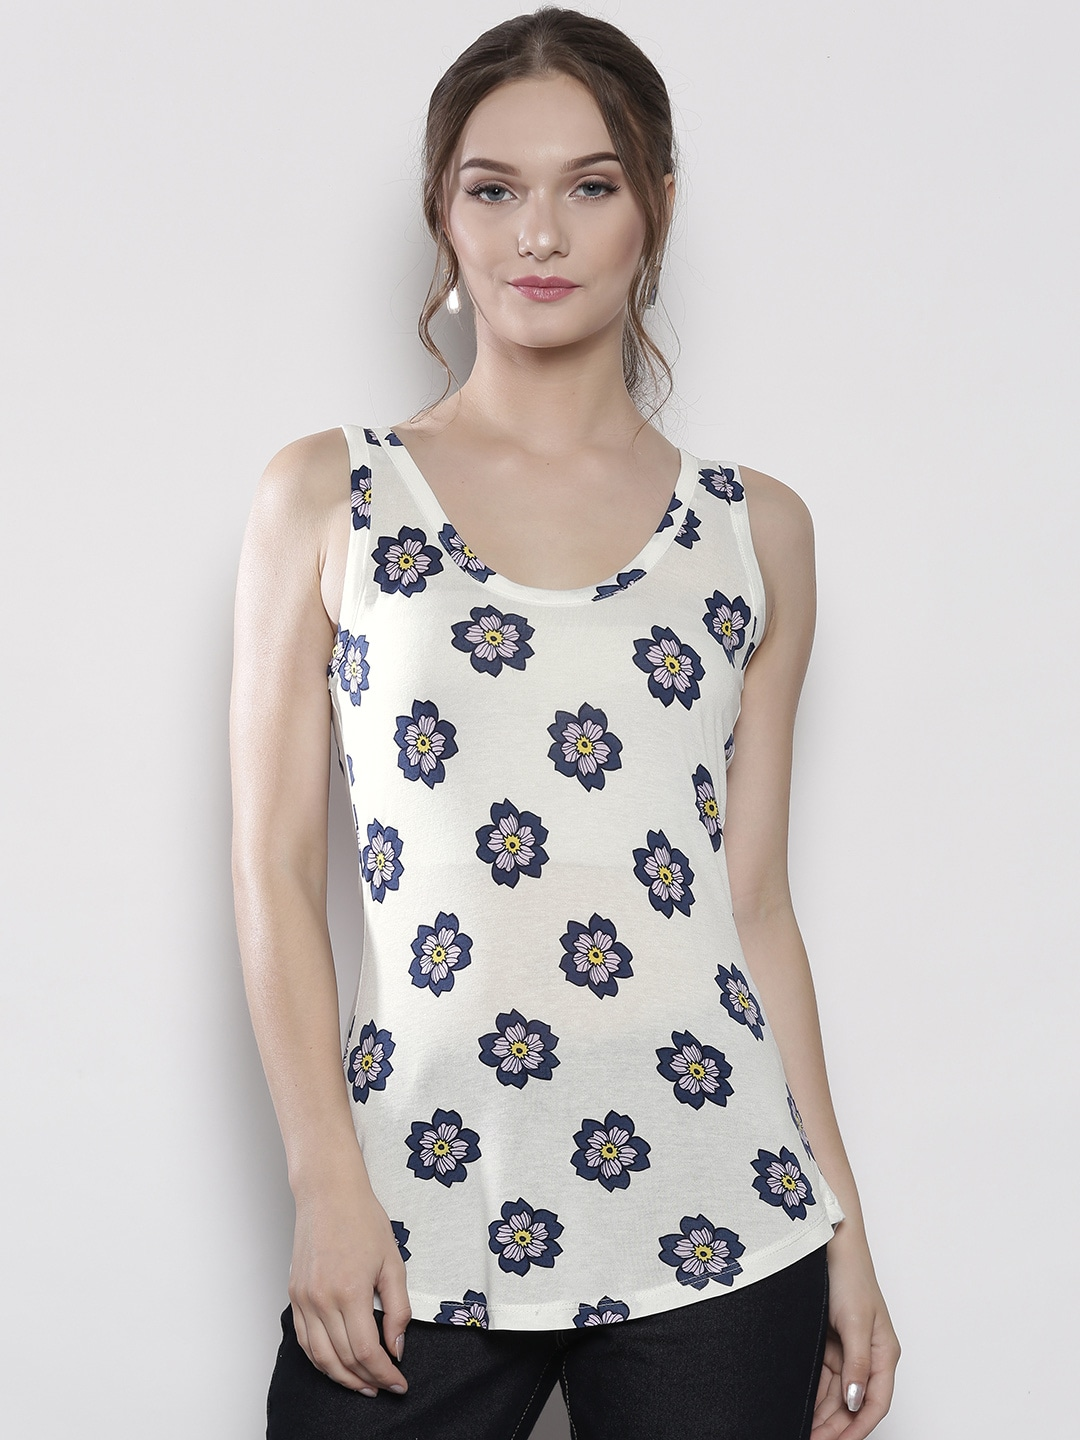 DOROTHY PERKINS Women White Printed Top image